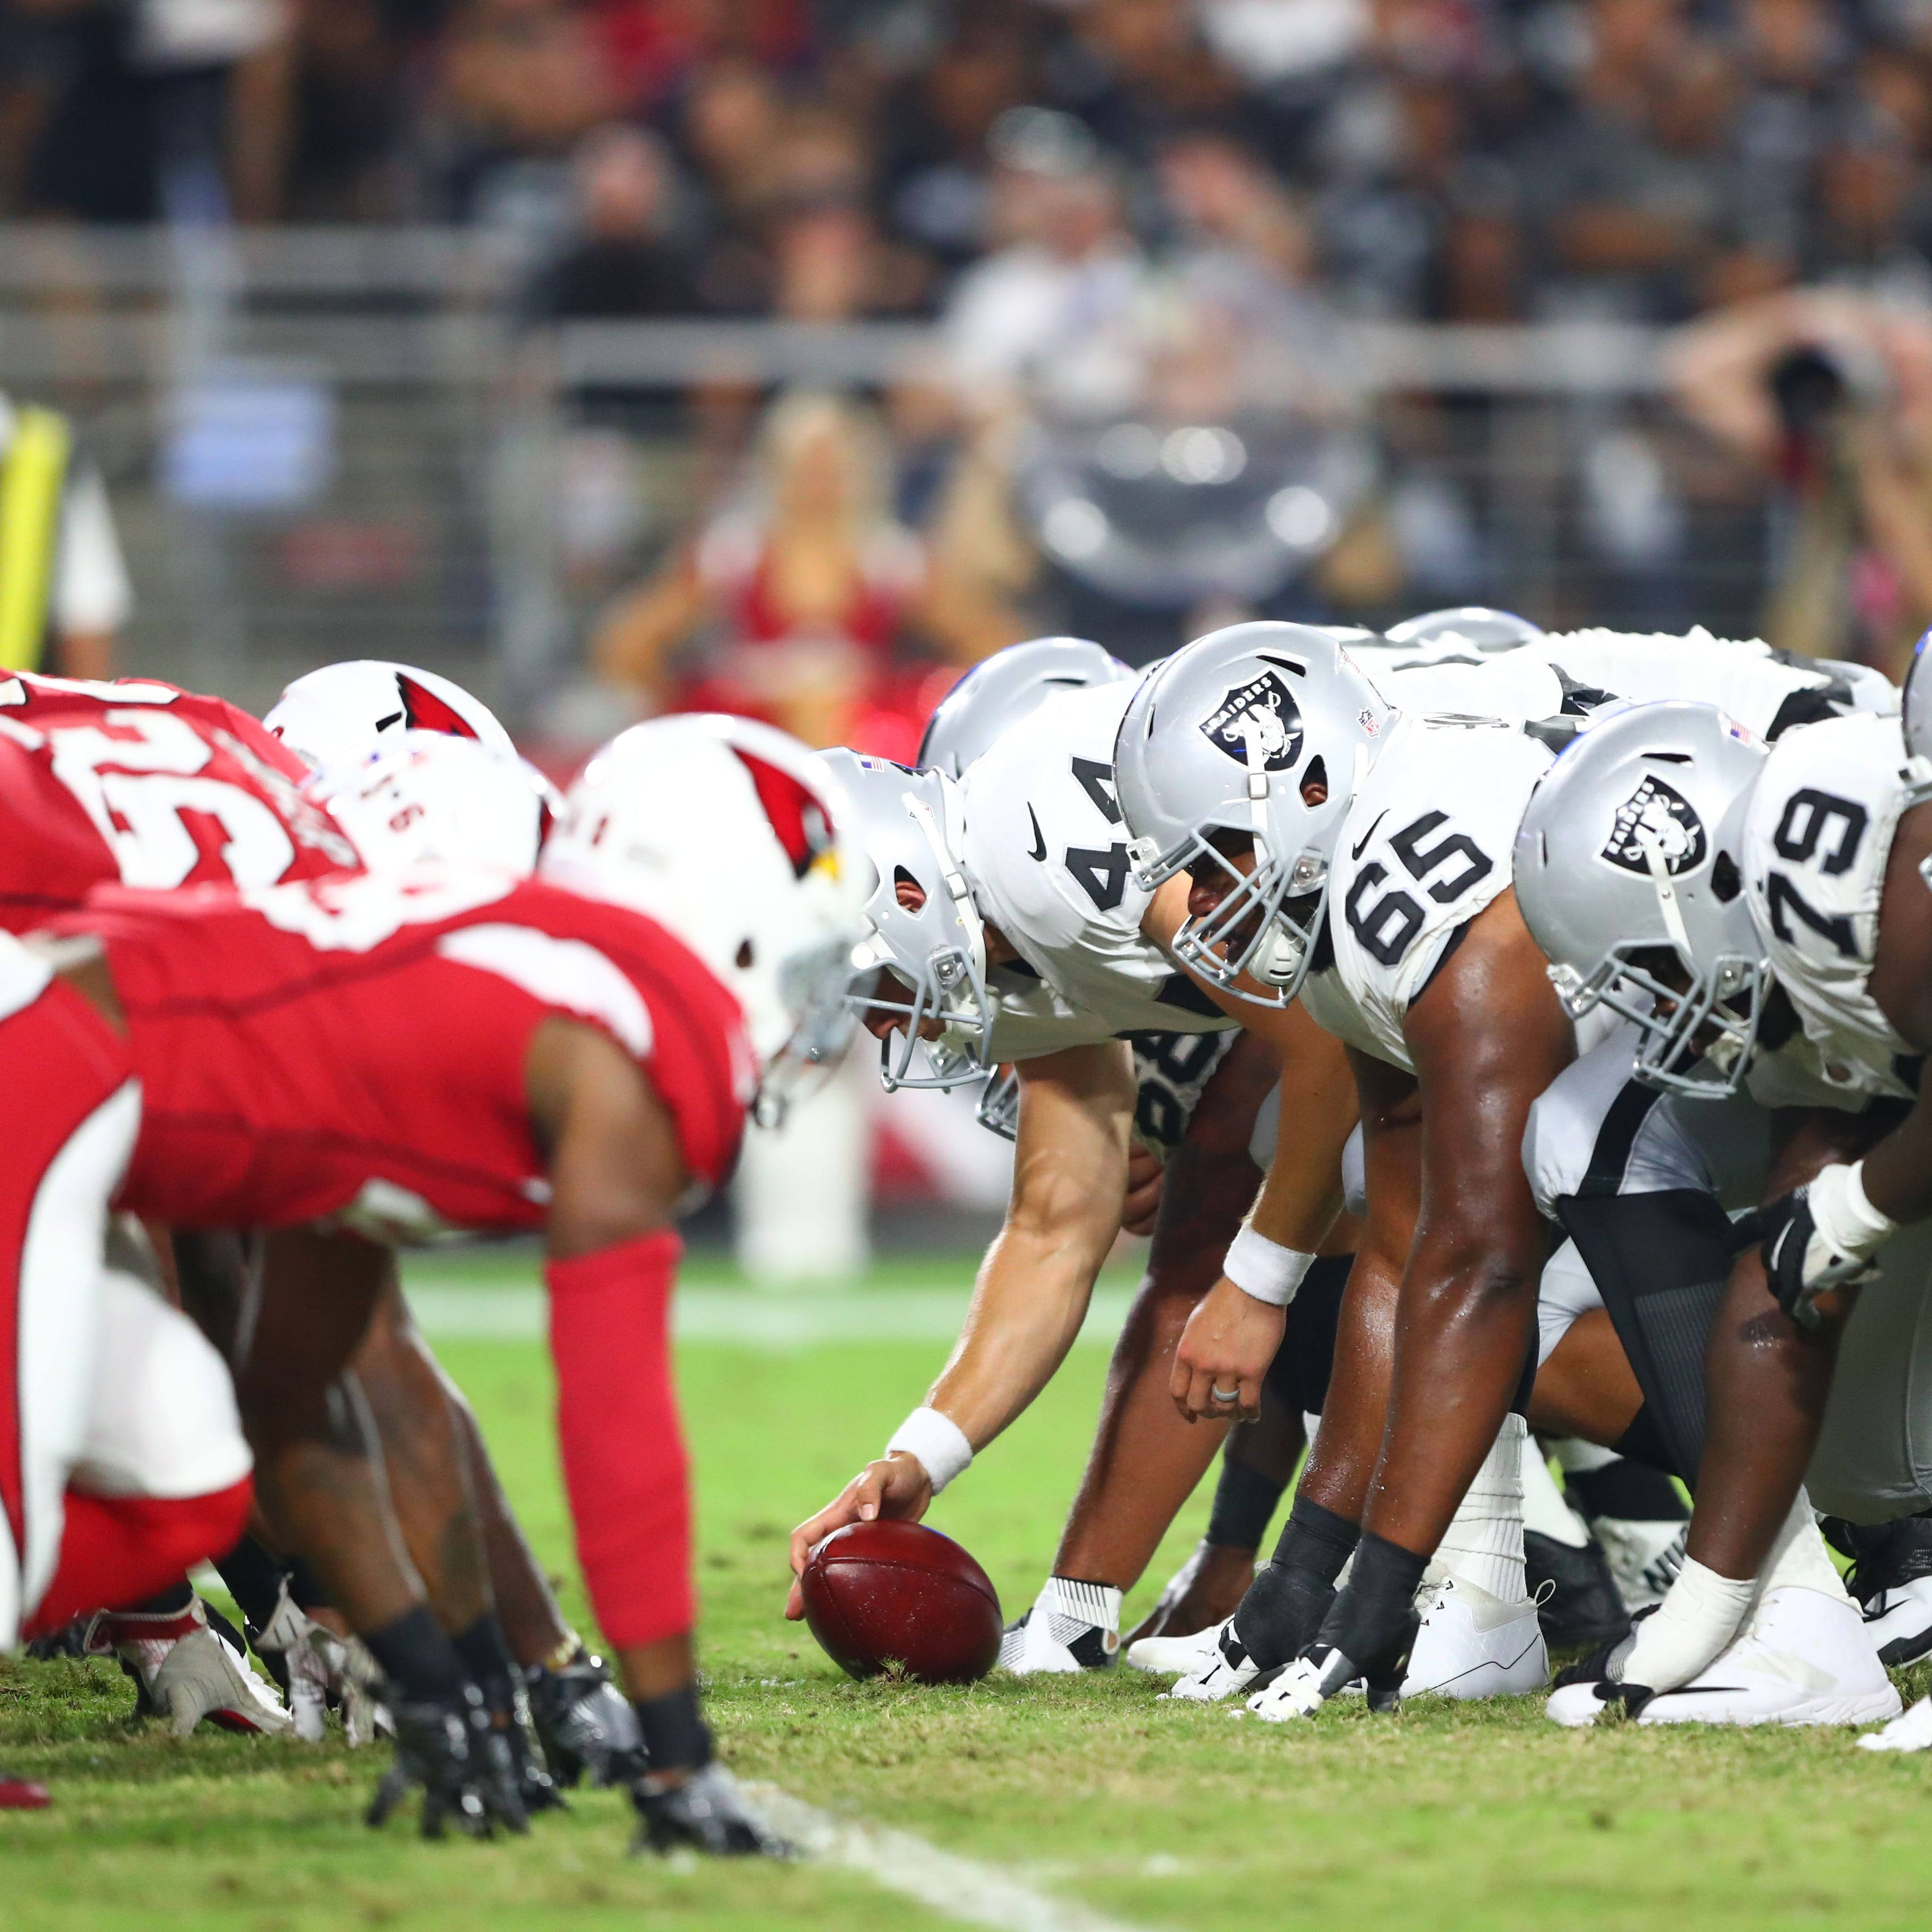 Arizona Cardinals vs. Oakland Raiders picks, predictions: Who wins Week 11 NFL game?